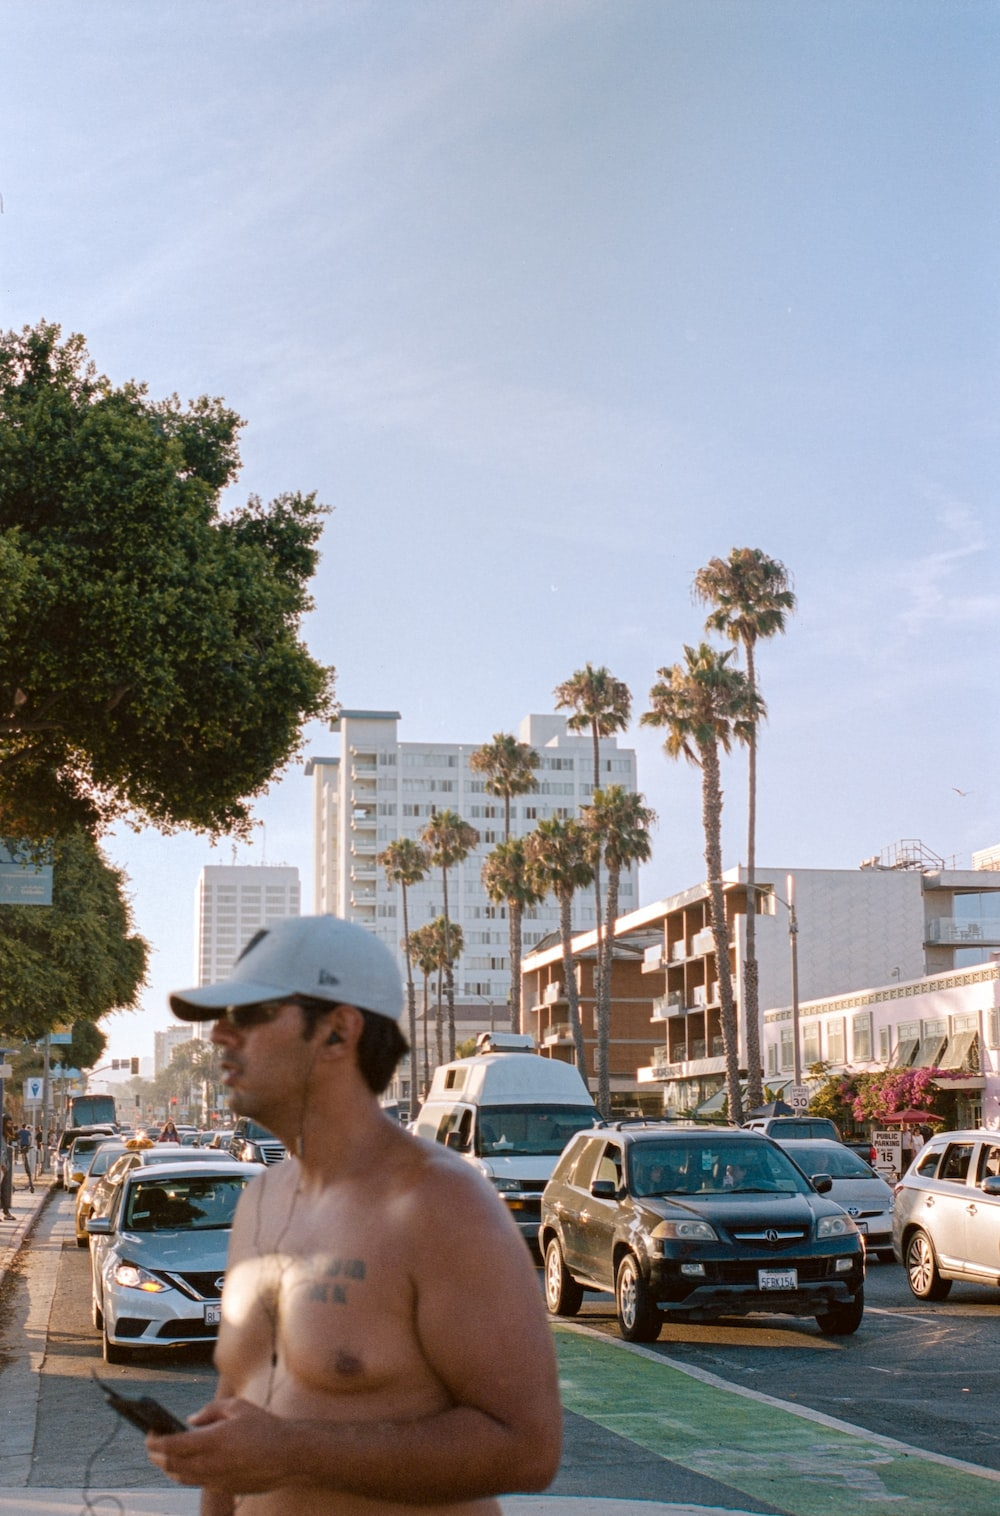 man in white hat standing near cars during daytime